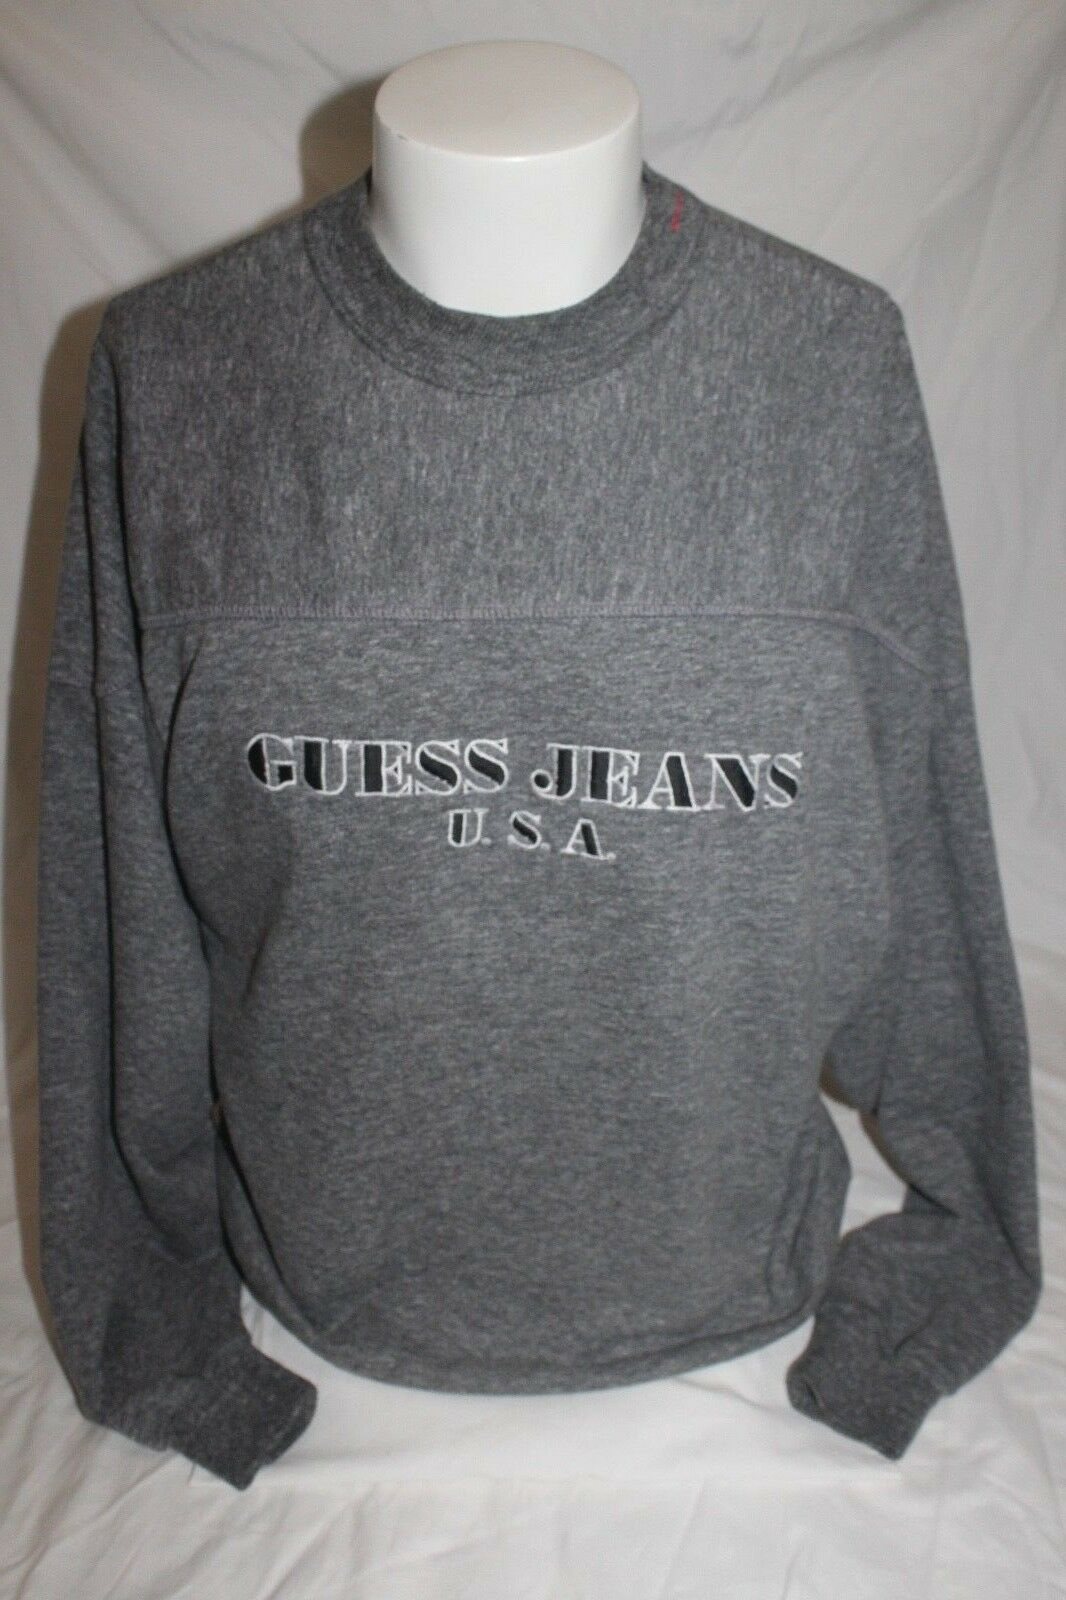 Vintage Guess Jeans USA Spell Out Georges Marciano Men's Dark grau Sweater Small